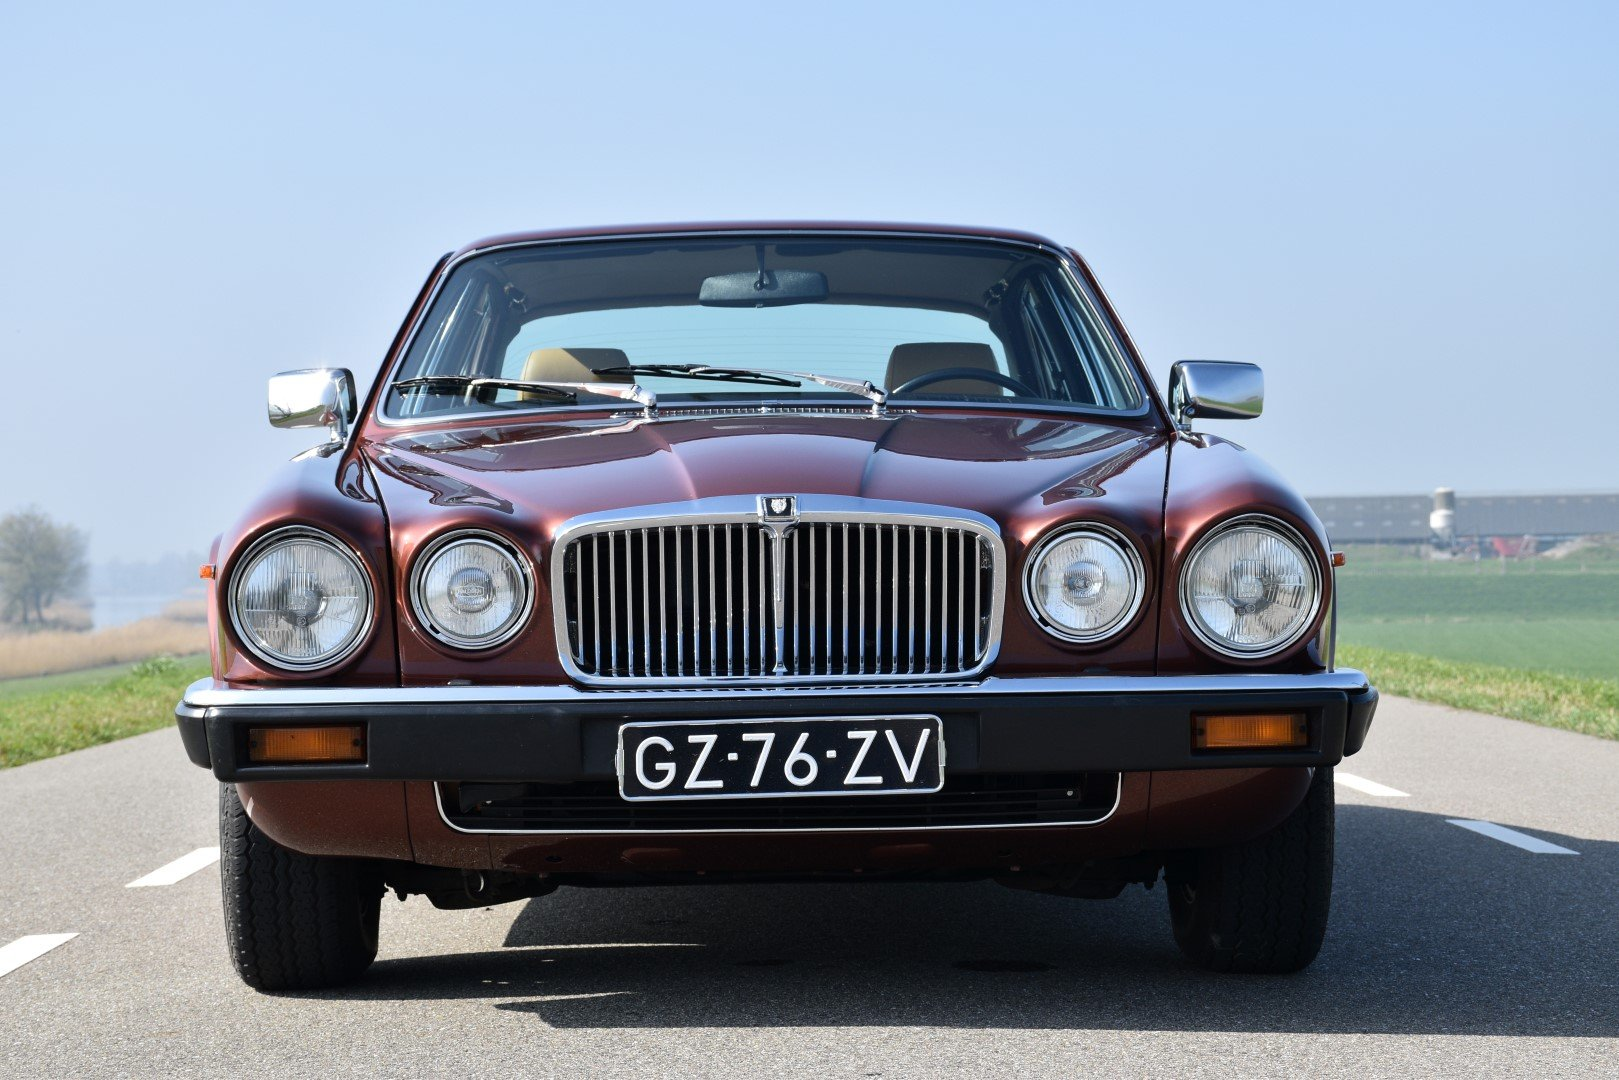 1981 Jaguar XJ6 series III 4.2 For Sale (picture 2 of 6)